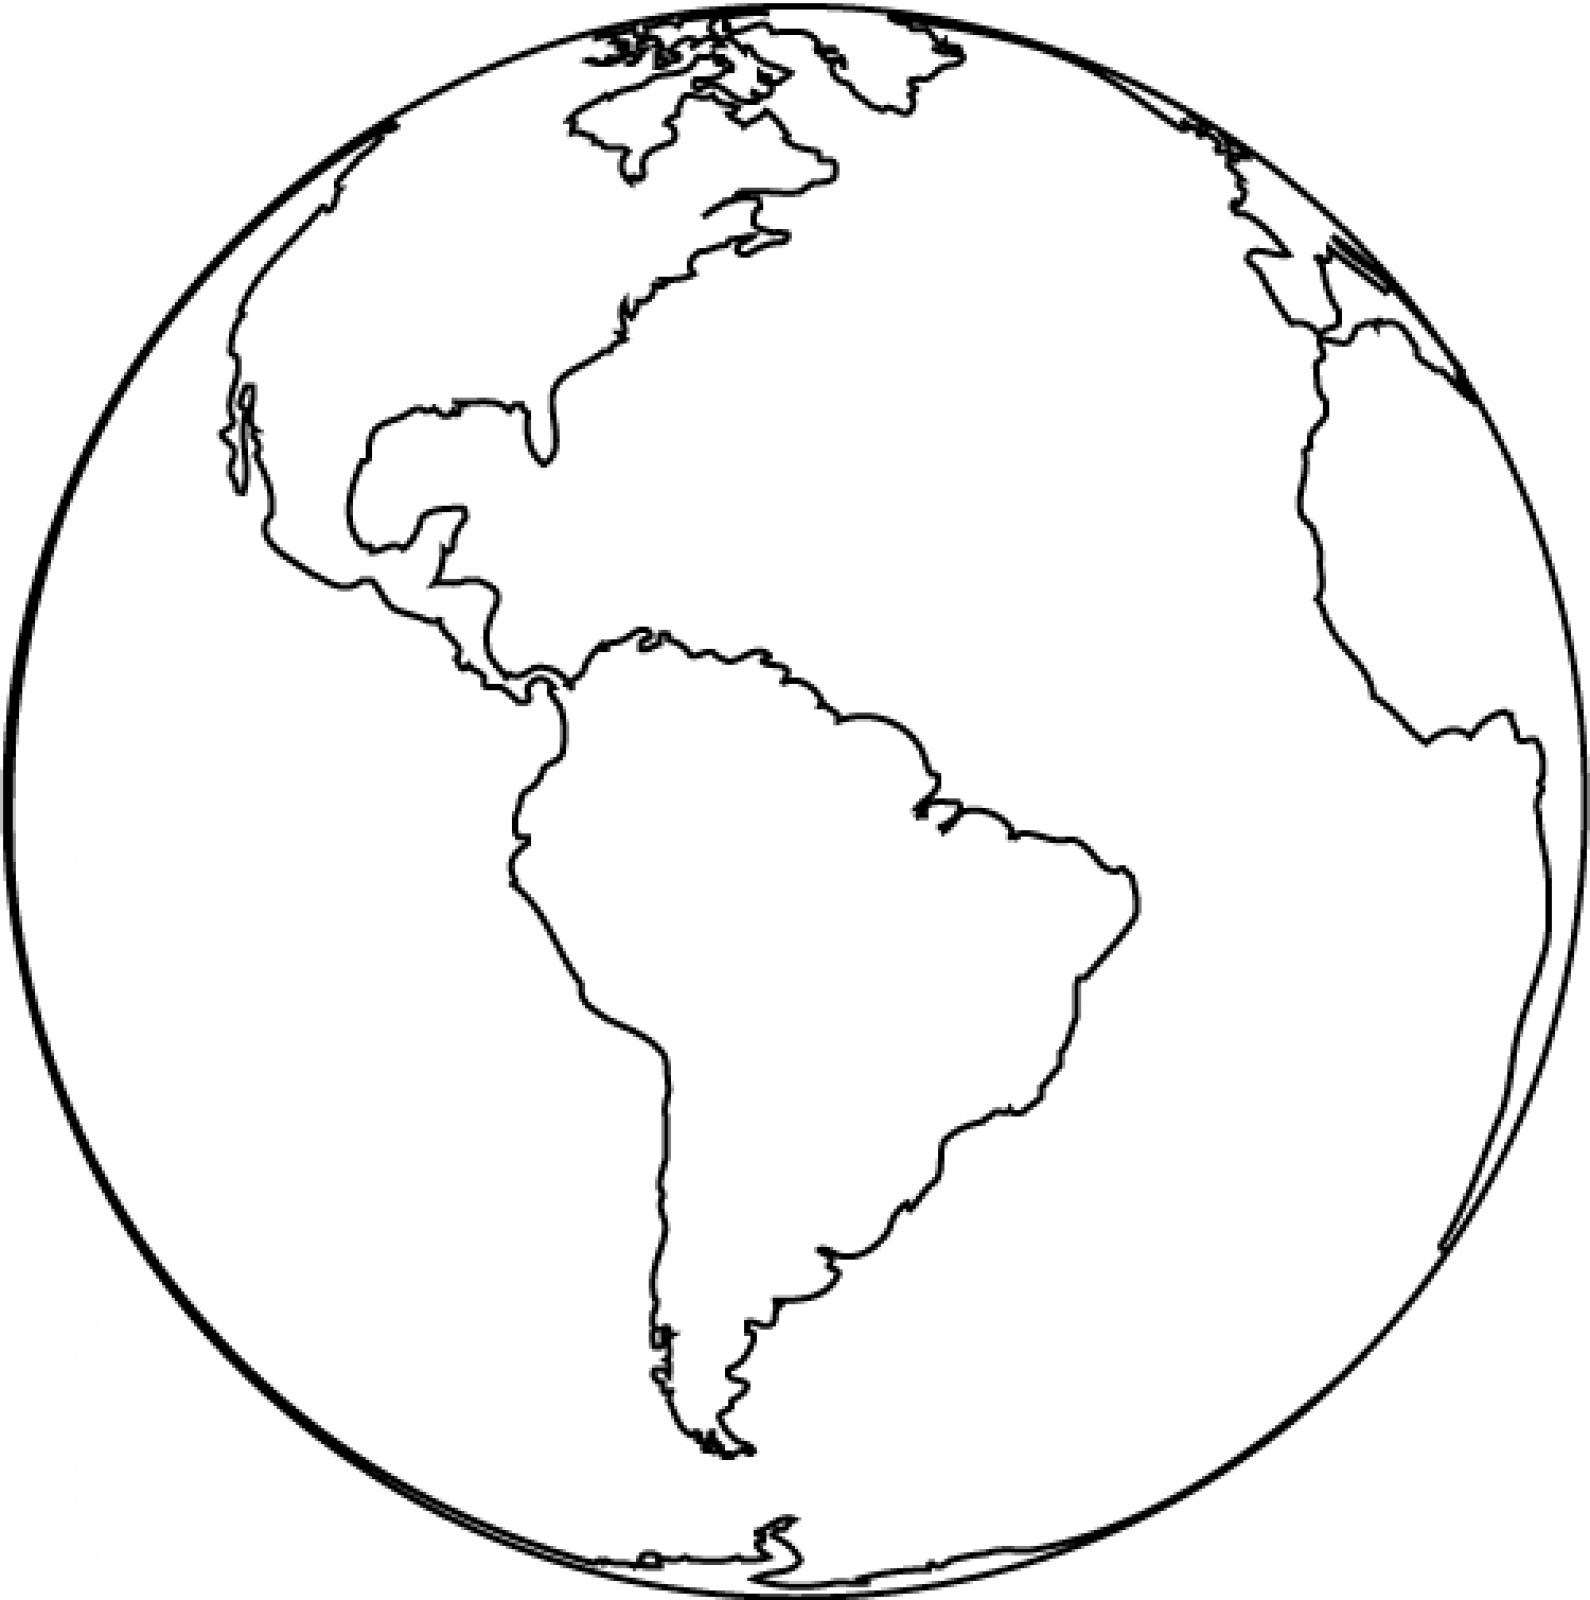 earth coloring pages free get this free earth coloring pages to print v5qom pages earth free coloring